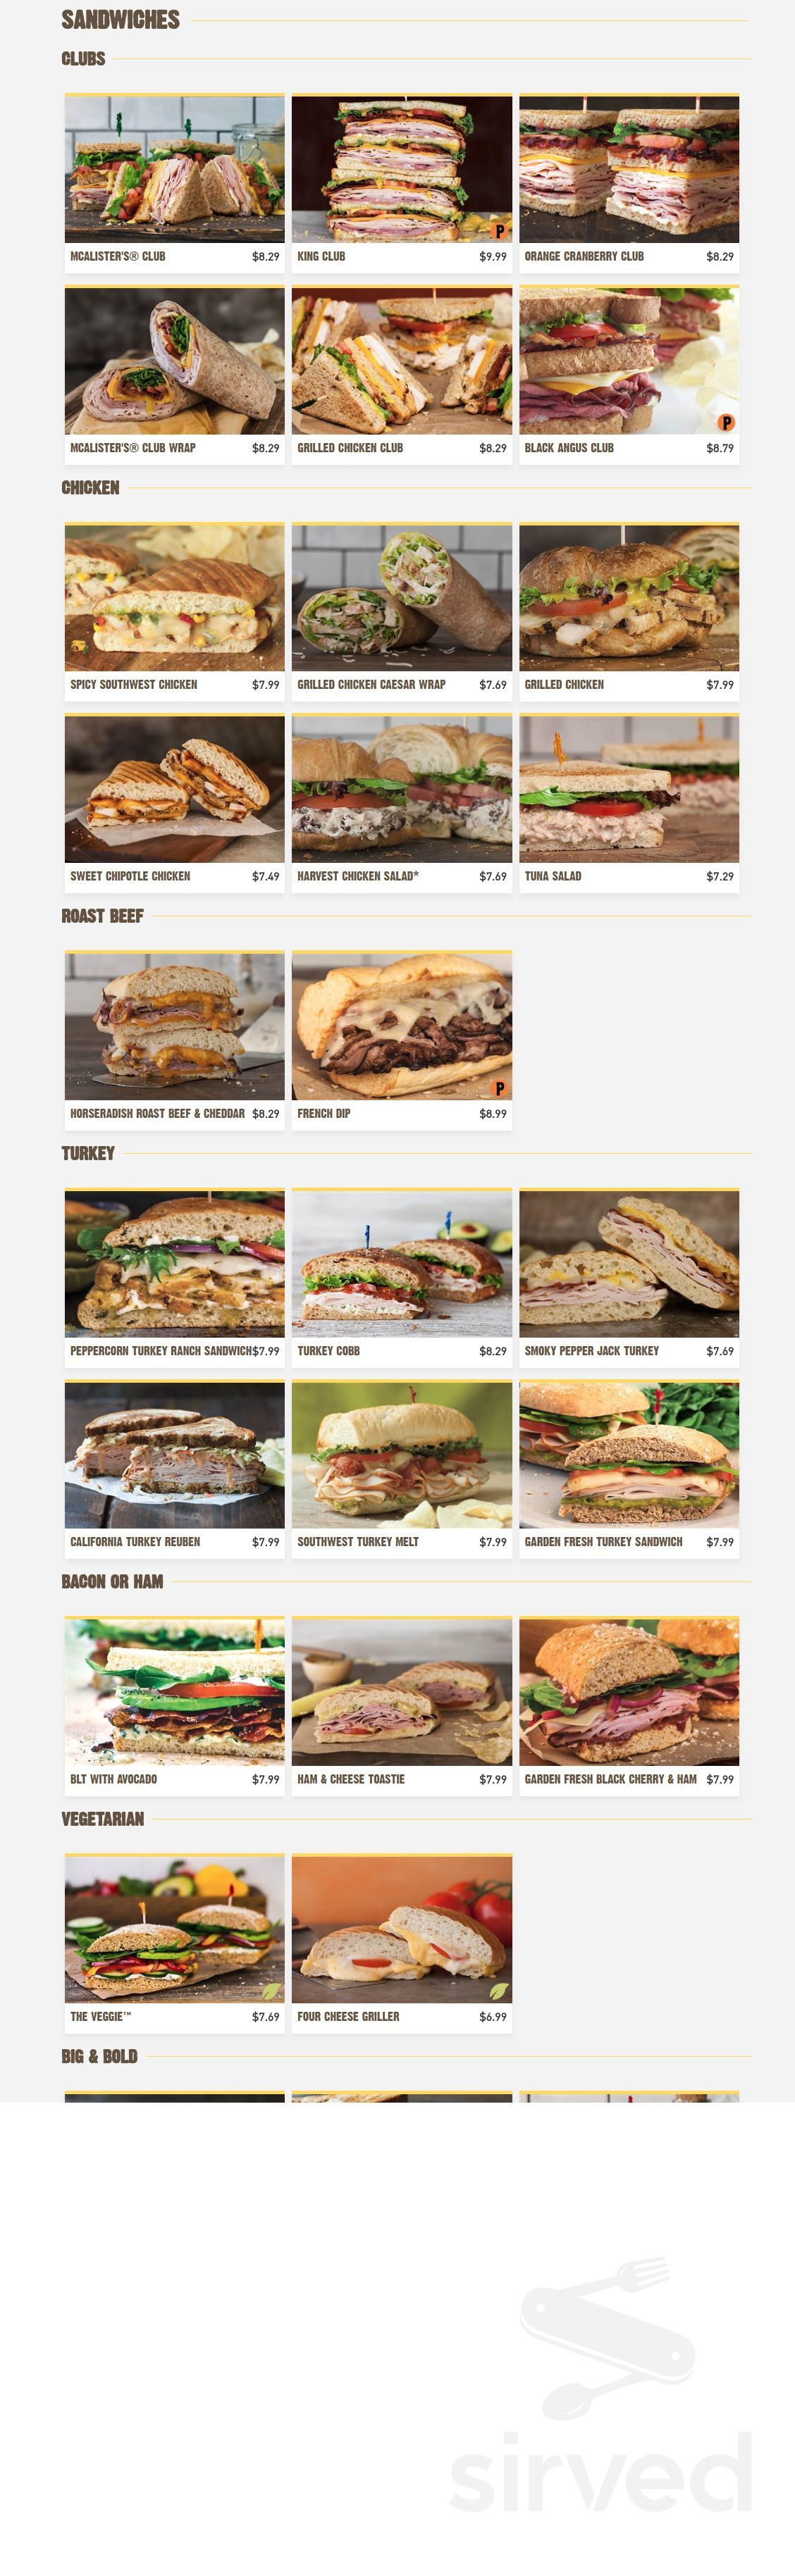 picture about Mcalisters Deli Printable Menu known as Menu for McAlisters Deli inside of Dayton, Ohio, United states